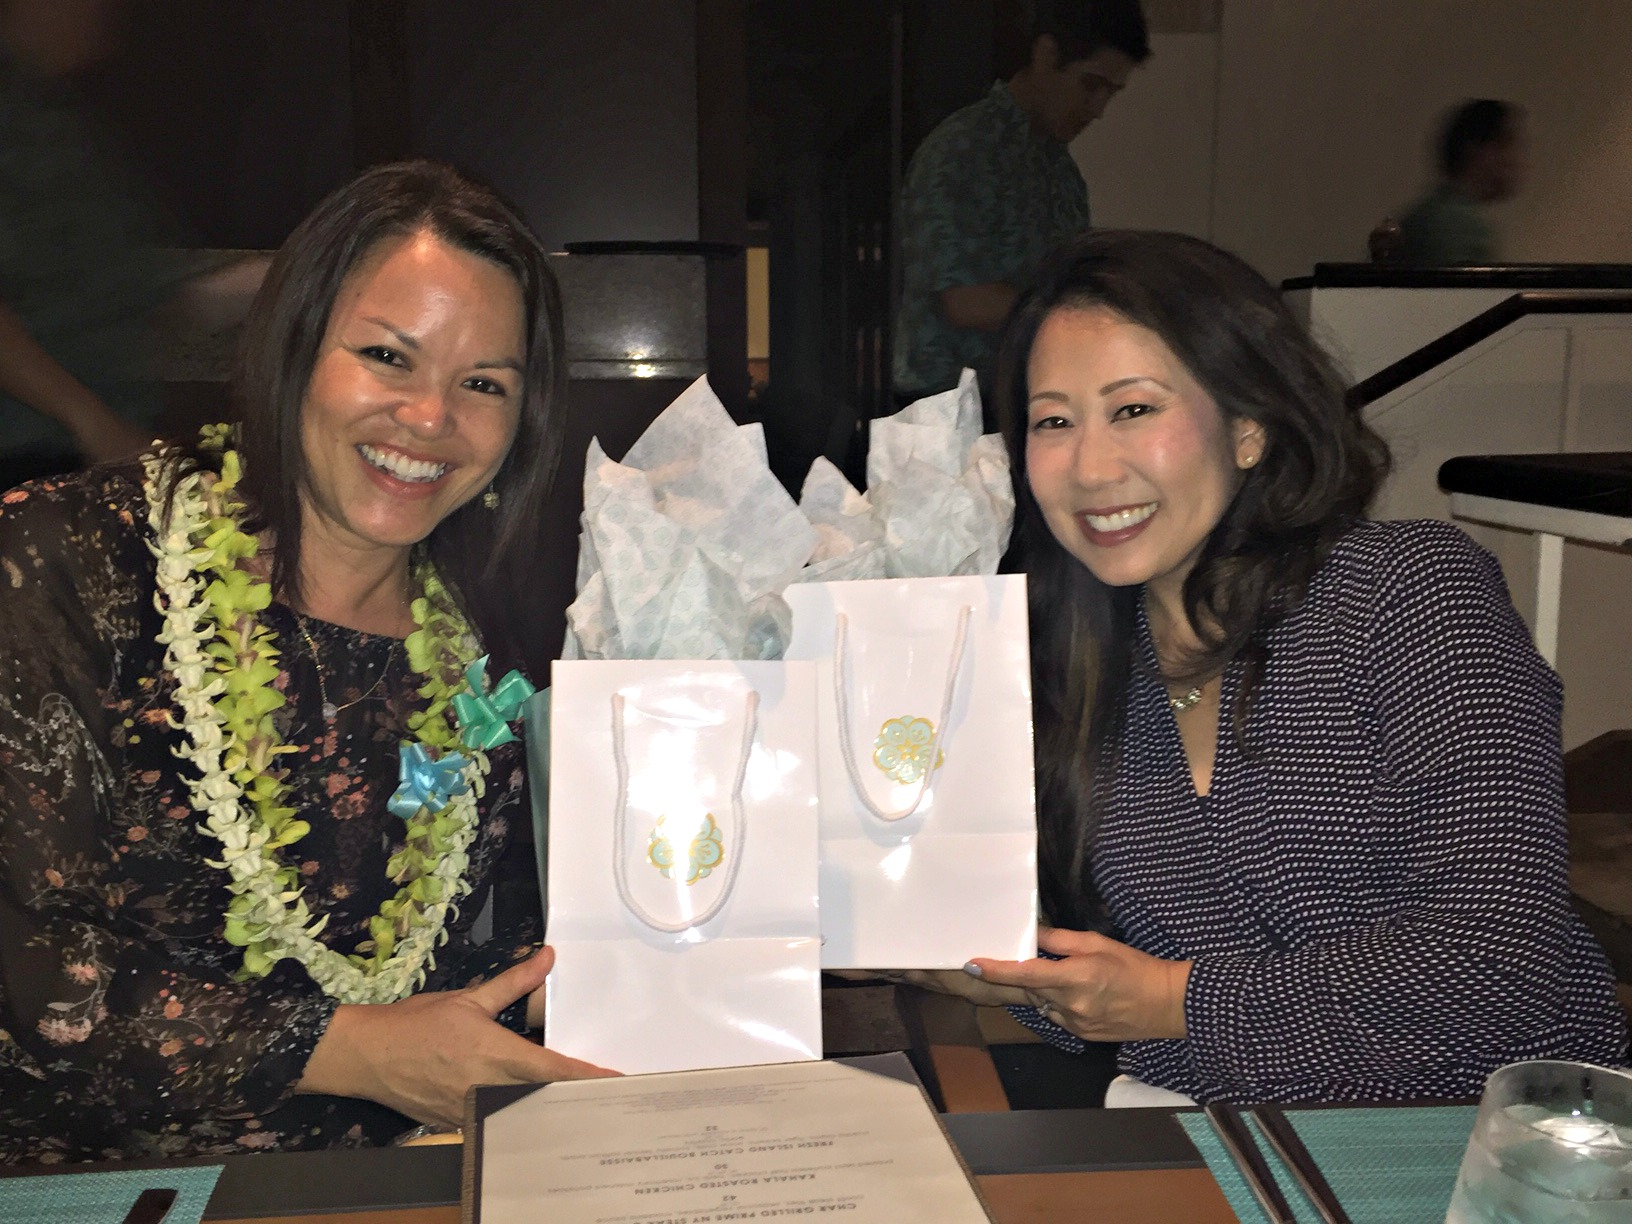 Gift bags from Jay - www.stampedwithaloha.com